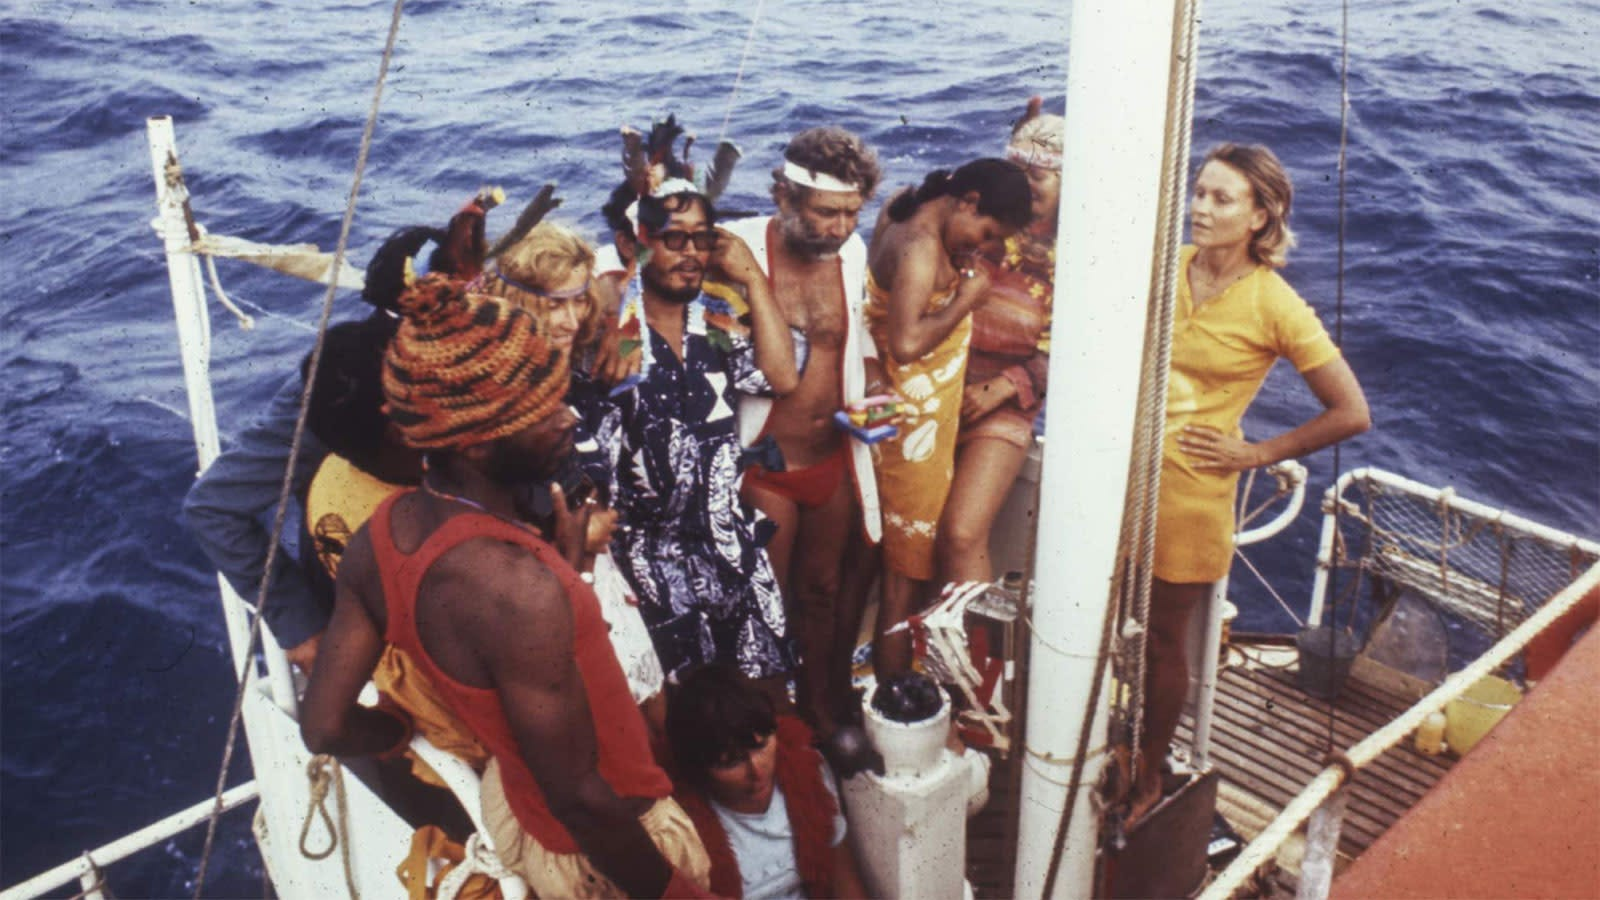 In The Raft, 10 Human Guinea Pigs Stop Being Polite and Start Getting Real... On a Boat